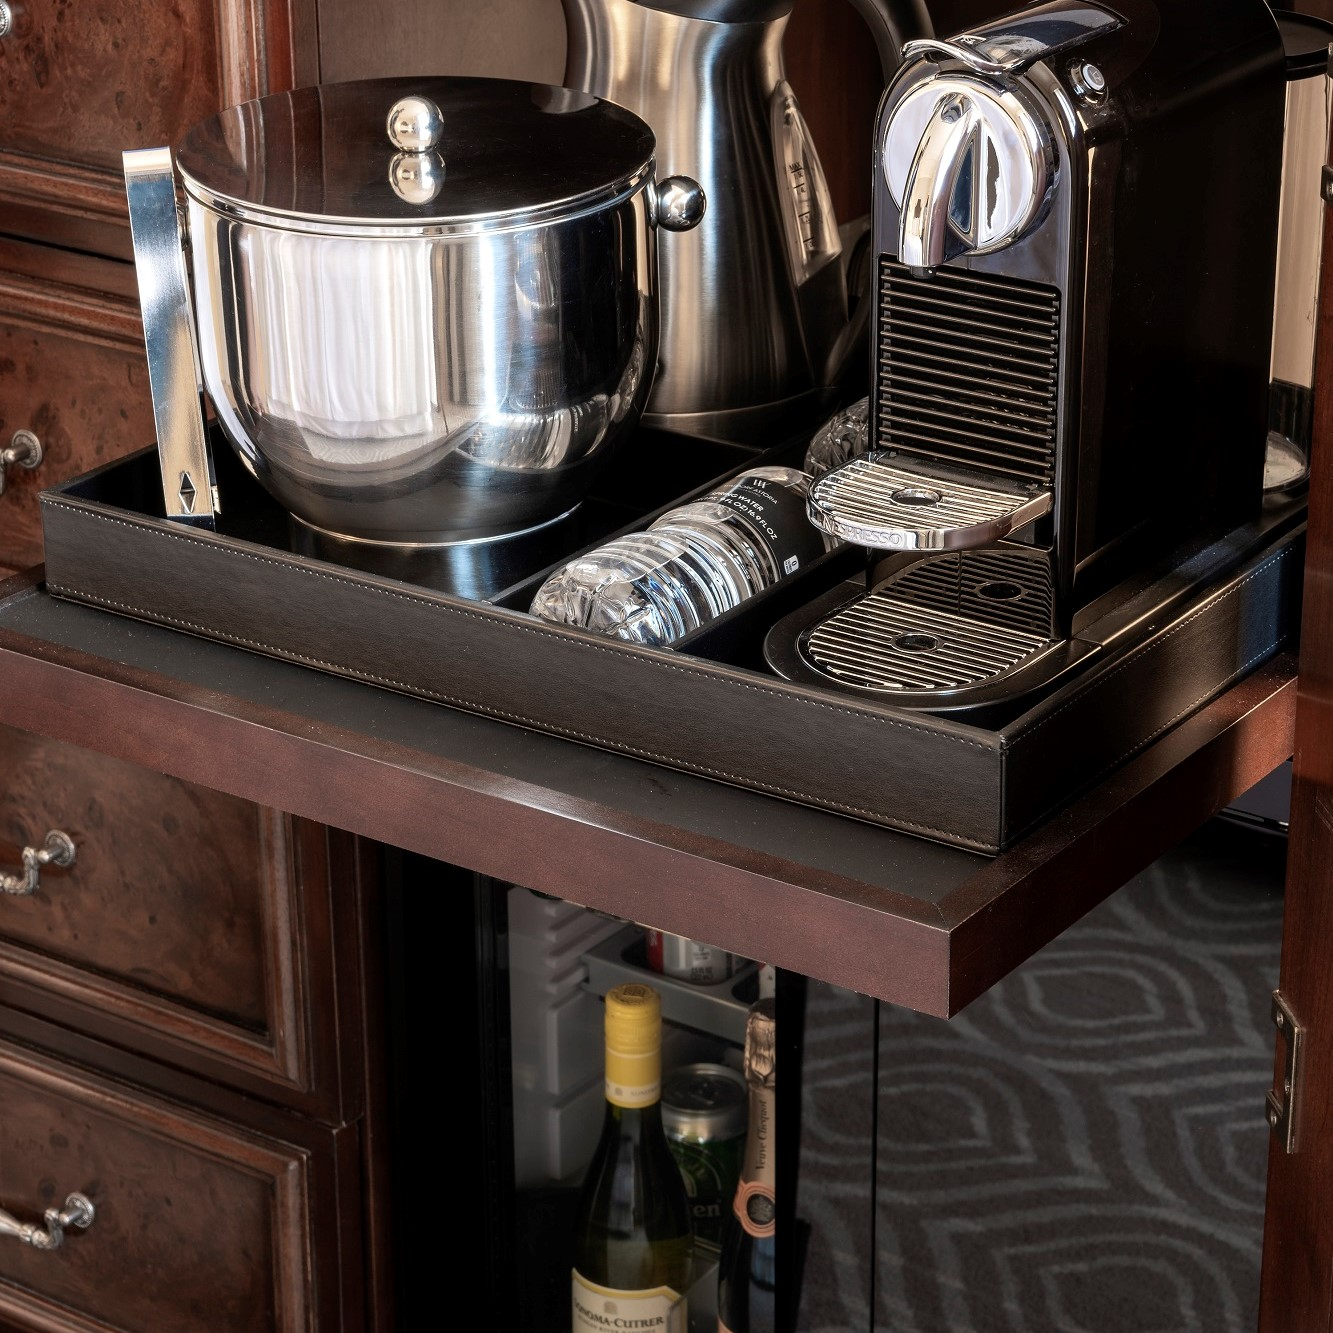 Minibar and Coffee Maker